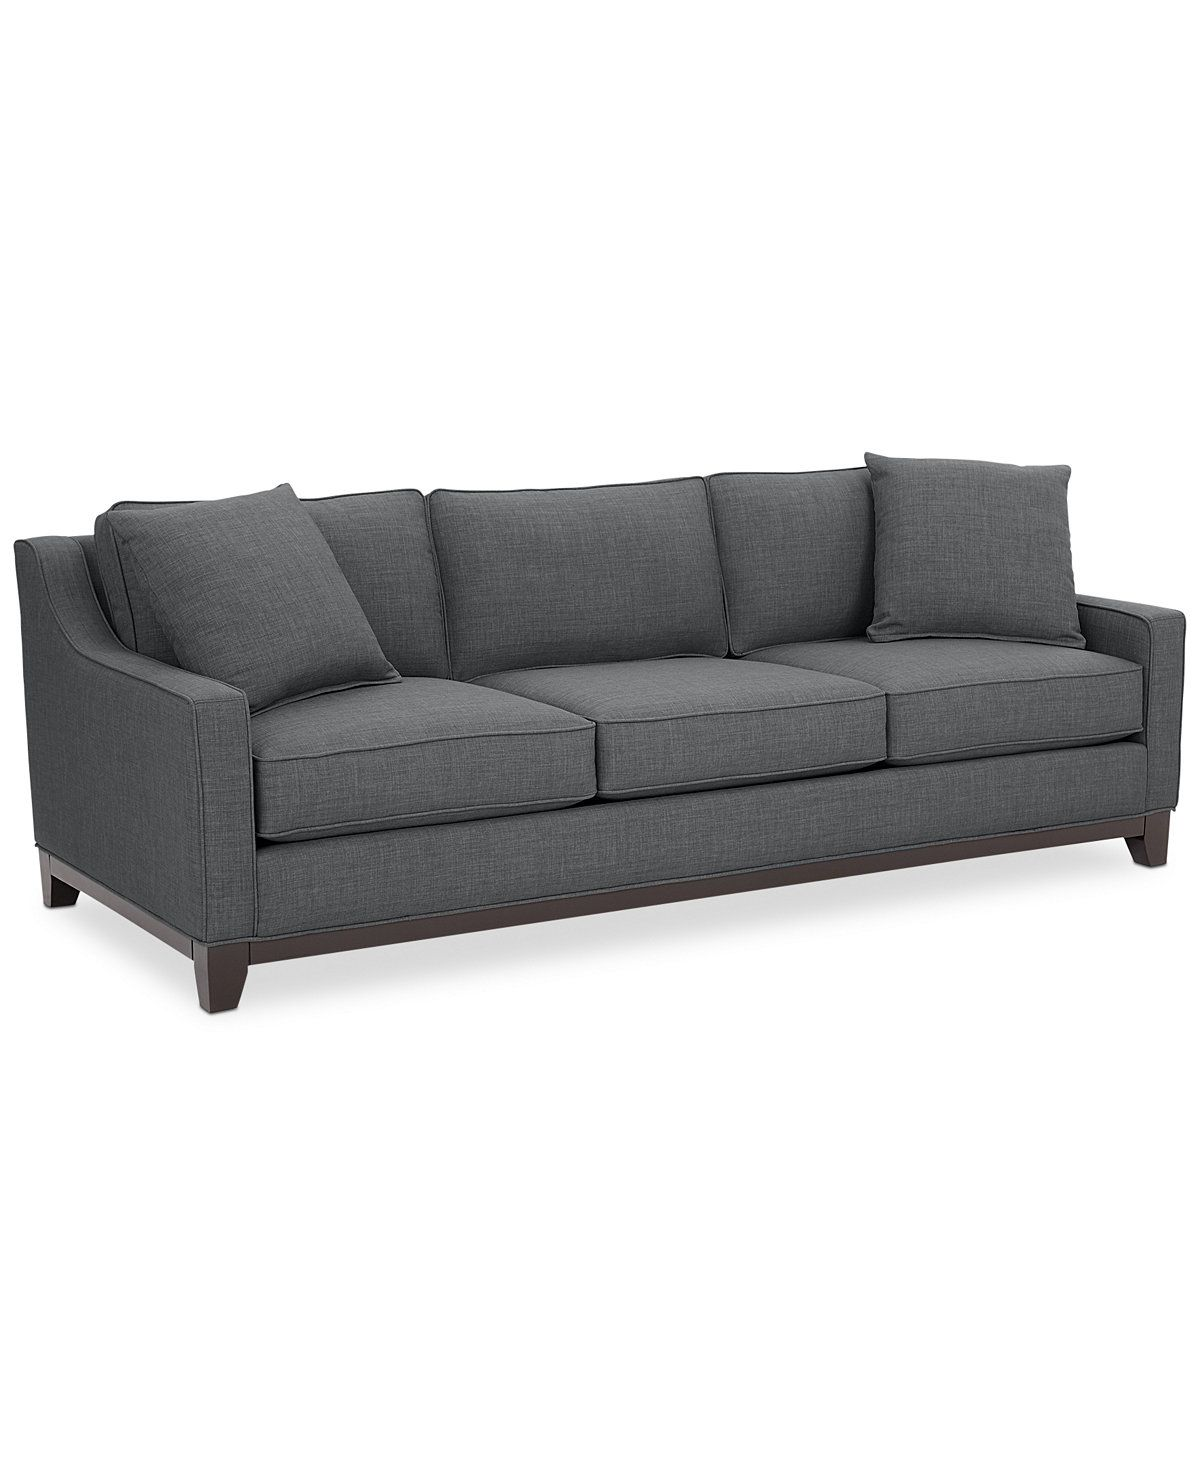 Keegan Fabric Sofa Only At Macy S Couches Sofas Furniture Macy S 90 719 Sale Price Also Dark Blue Green Fabric Sofa Furniture Sofa